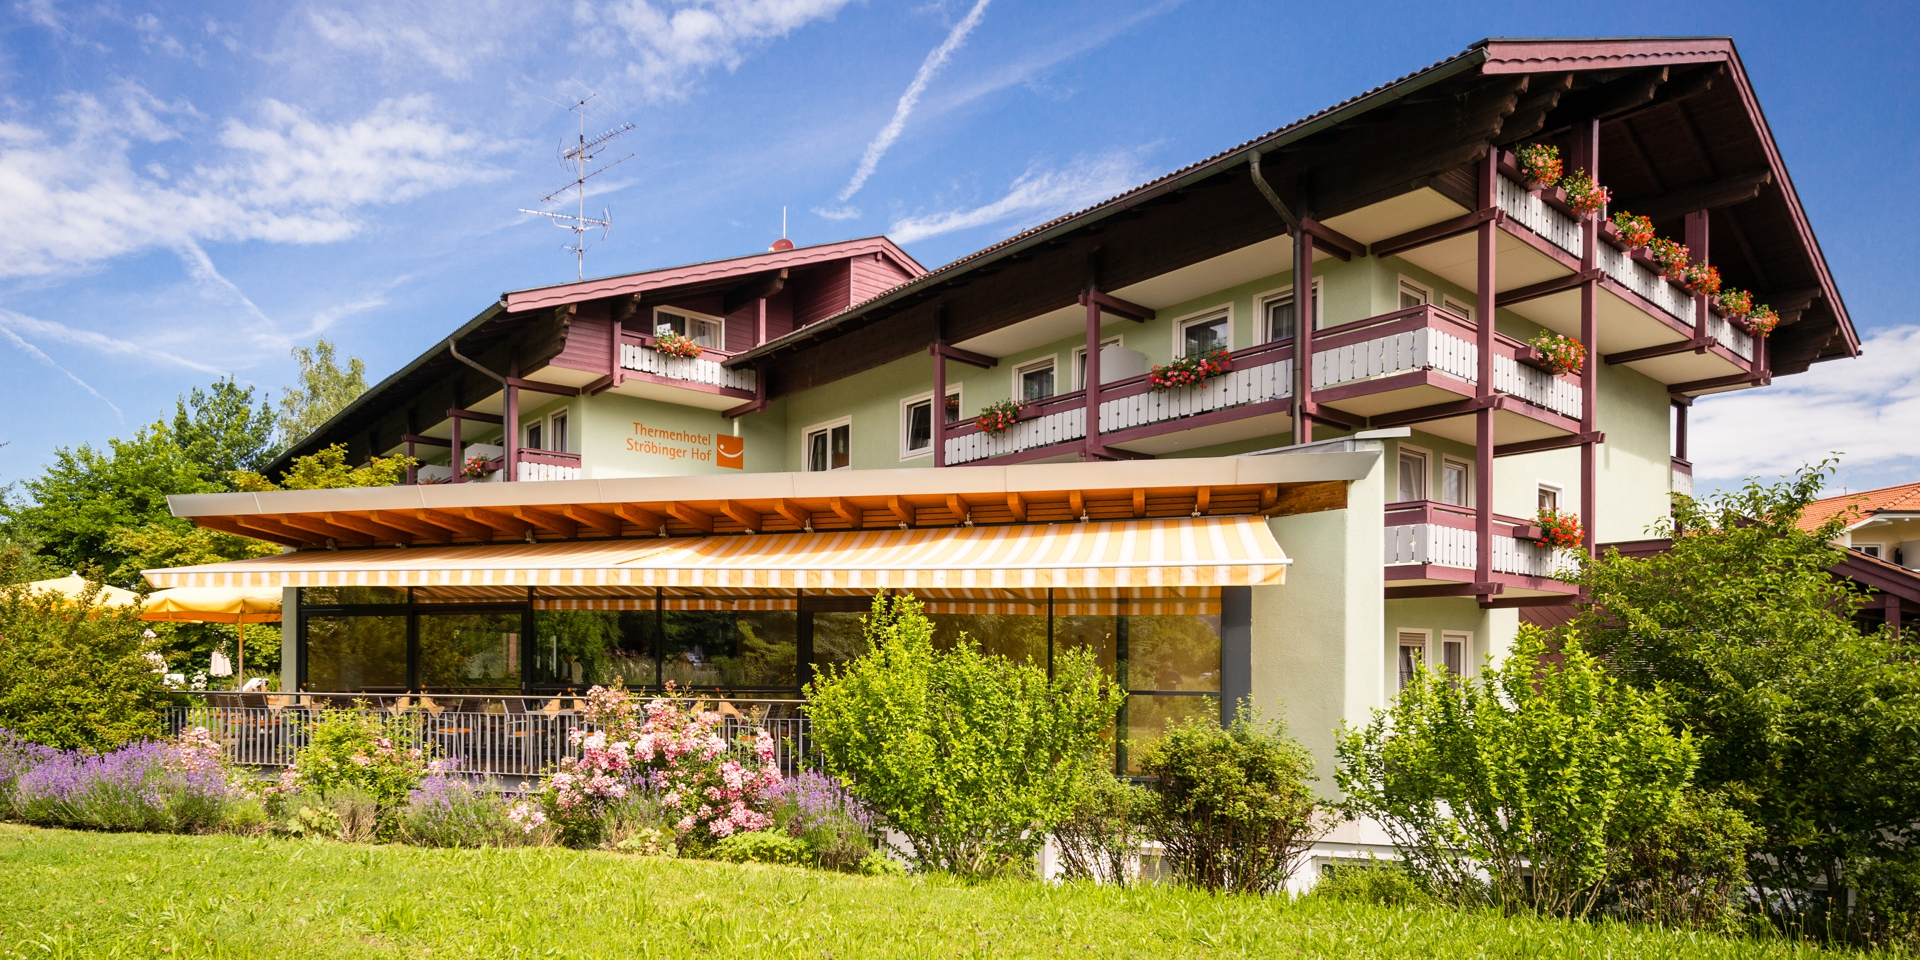 Thermenhotel Ströbinger Hof 83093 Bad Endorf